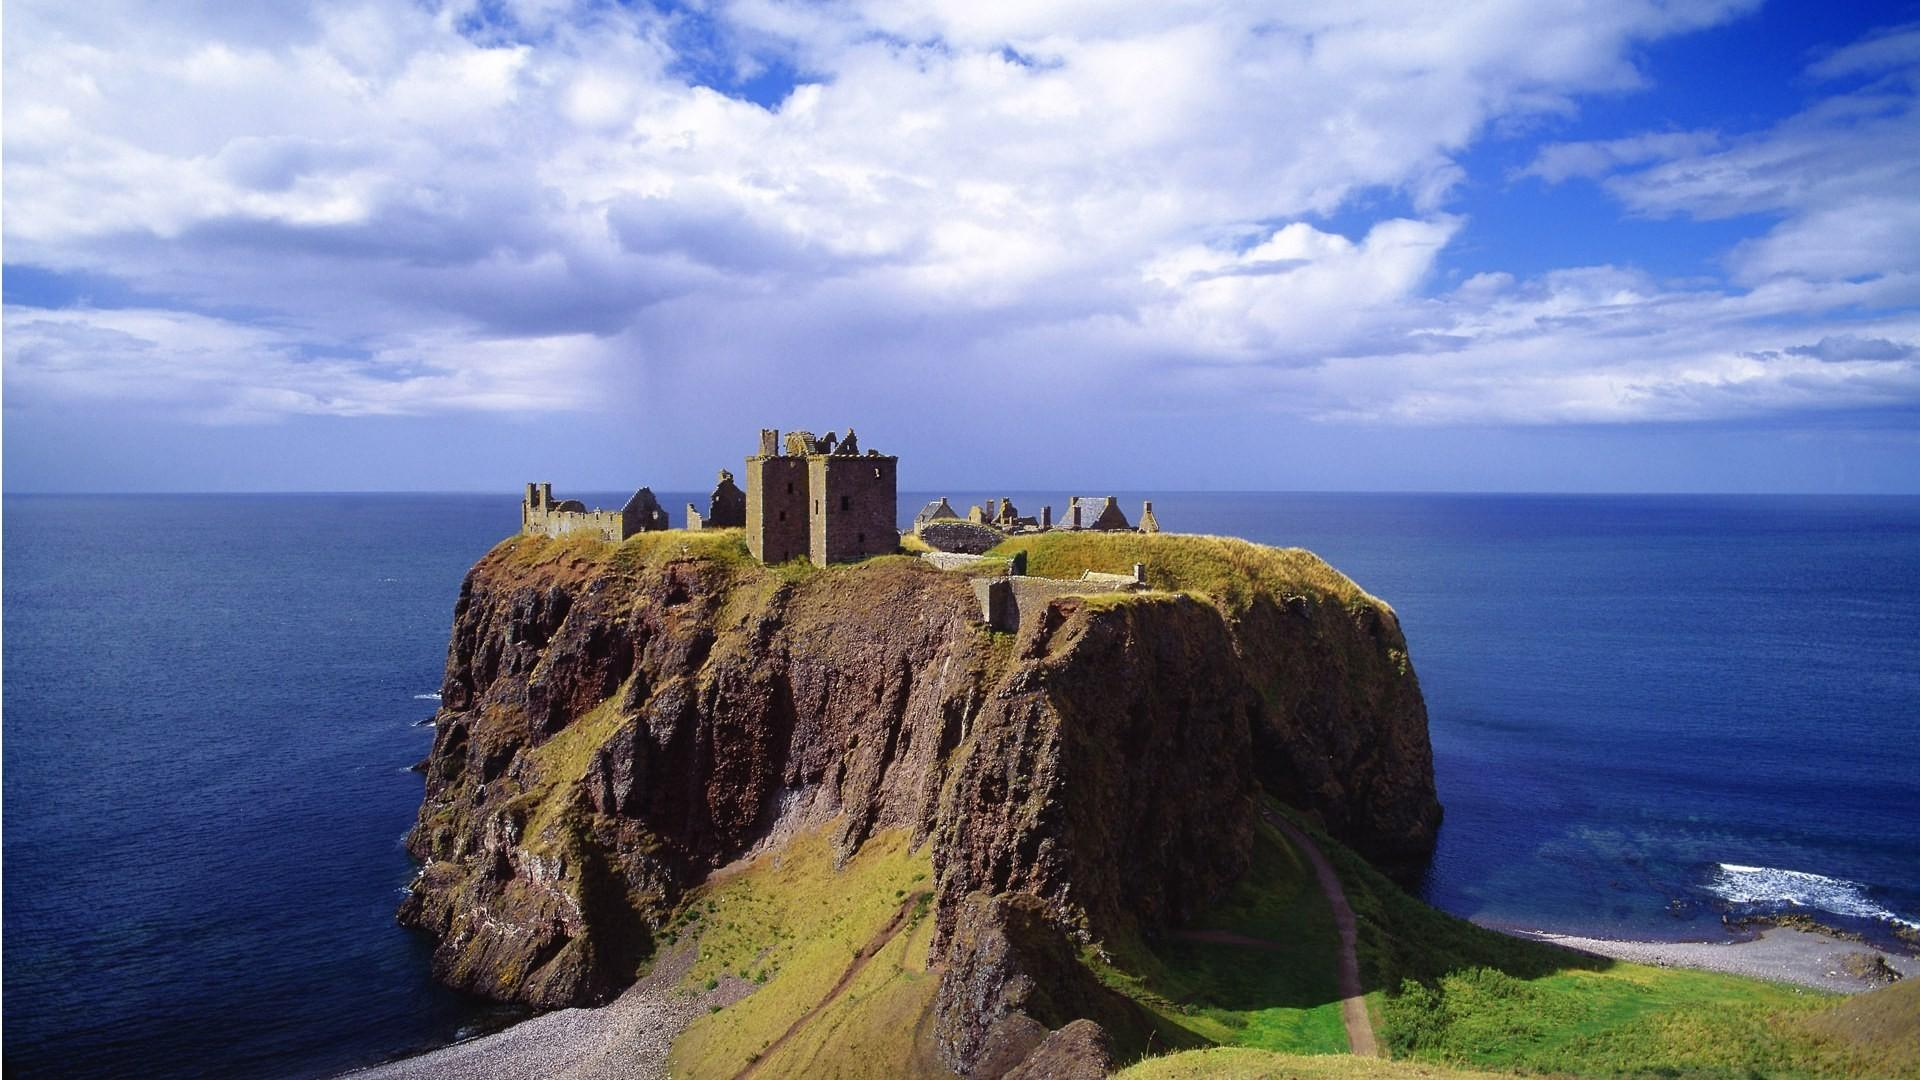 3d Animated Wallpaper Windows 10 Dunnottar Castle Hd Wallpapers